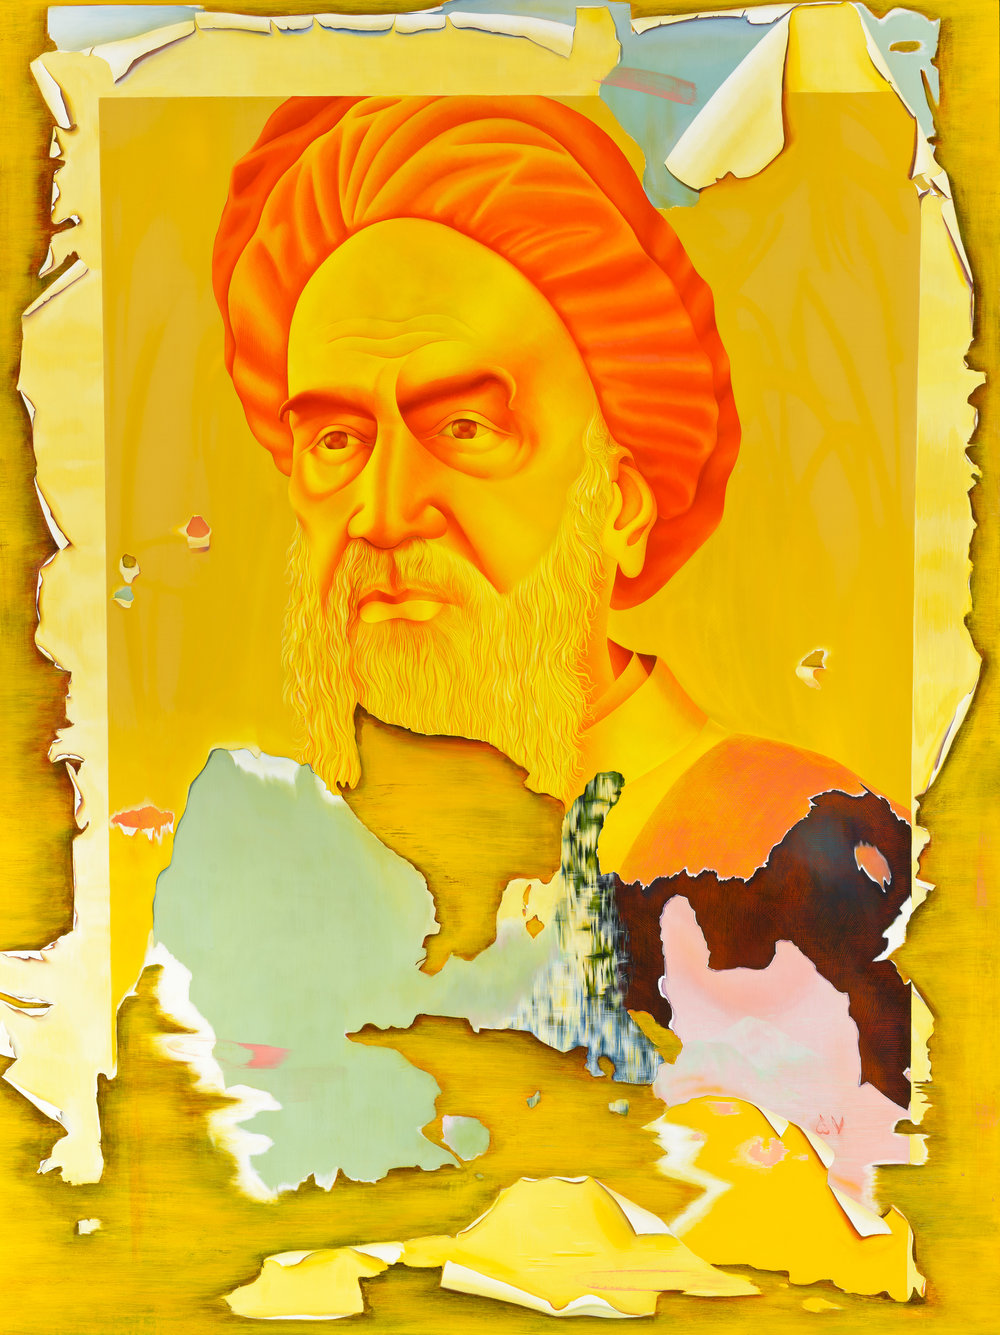 Taravat Talepasand    Khomeini , 2015  Egg tempera and oil on linen   48 x 36 in